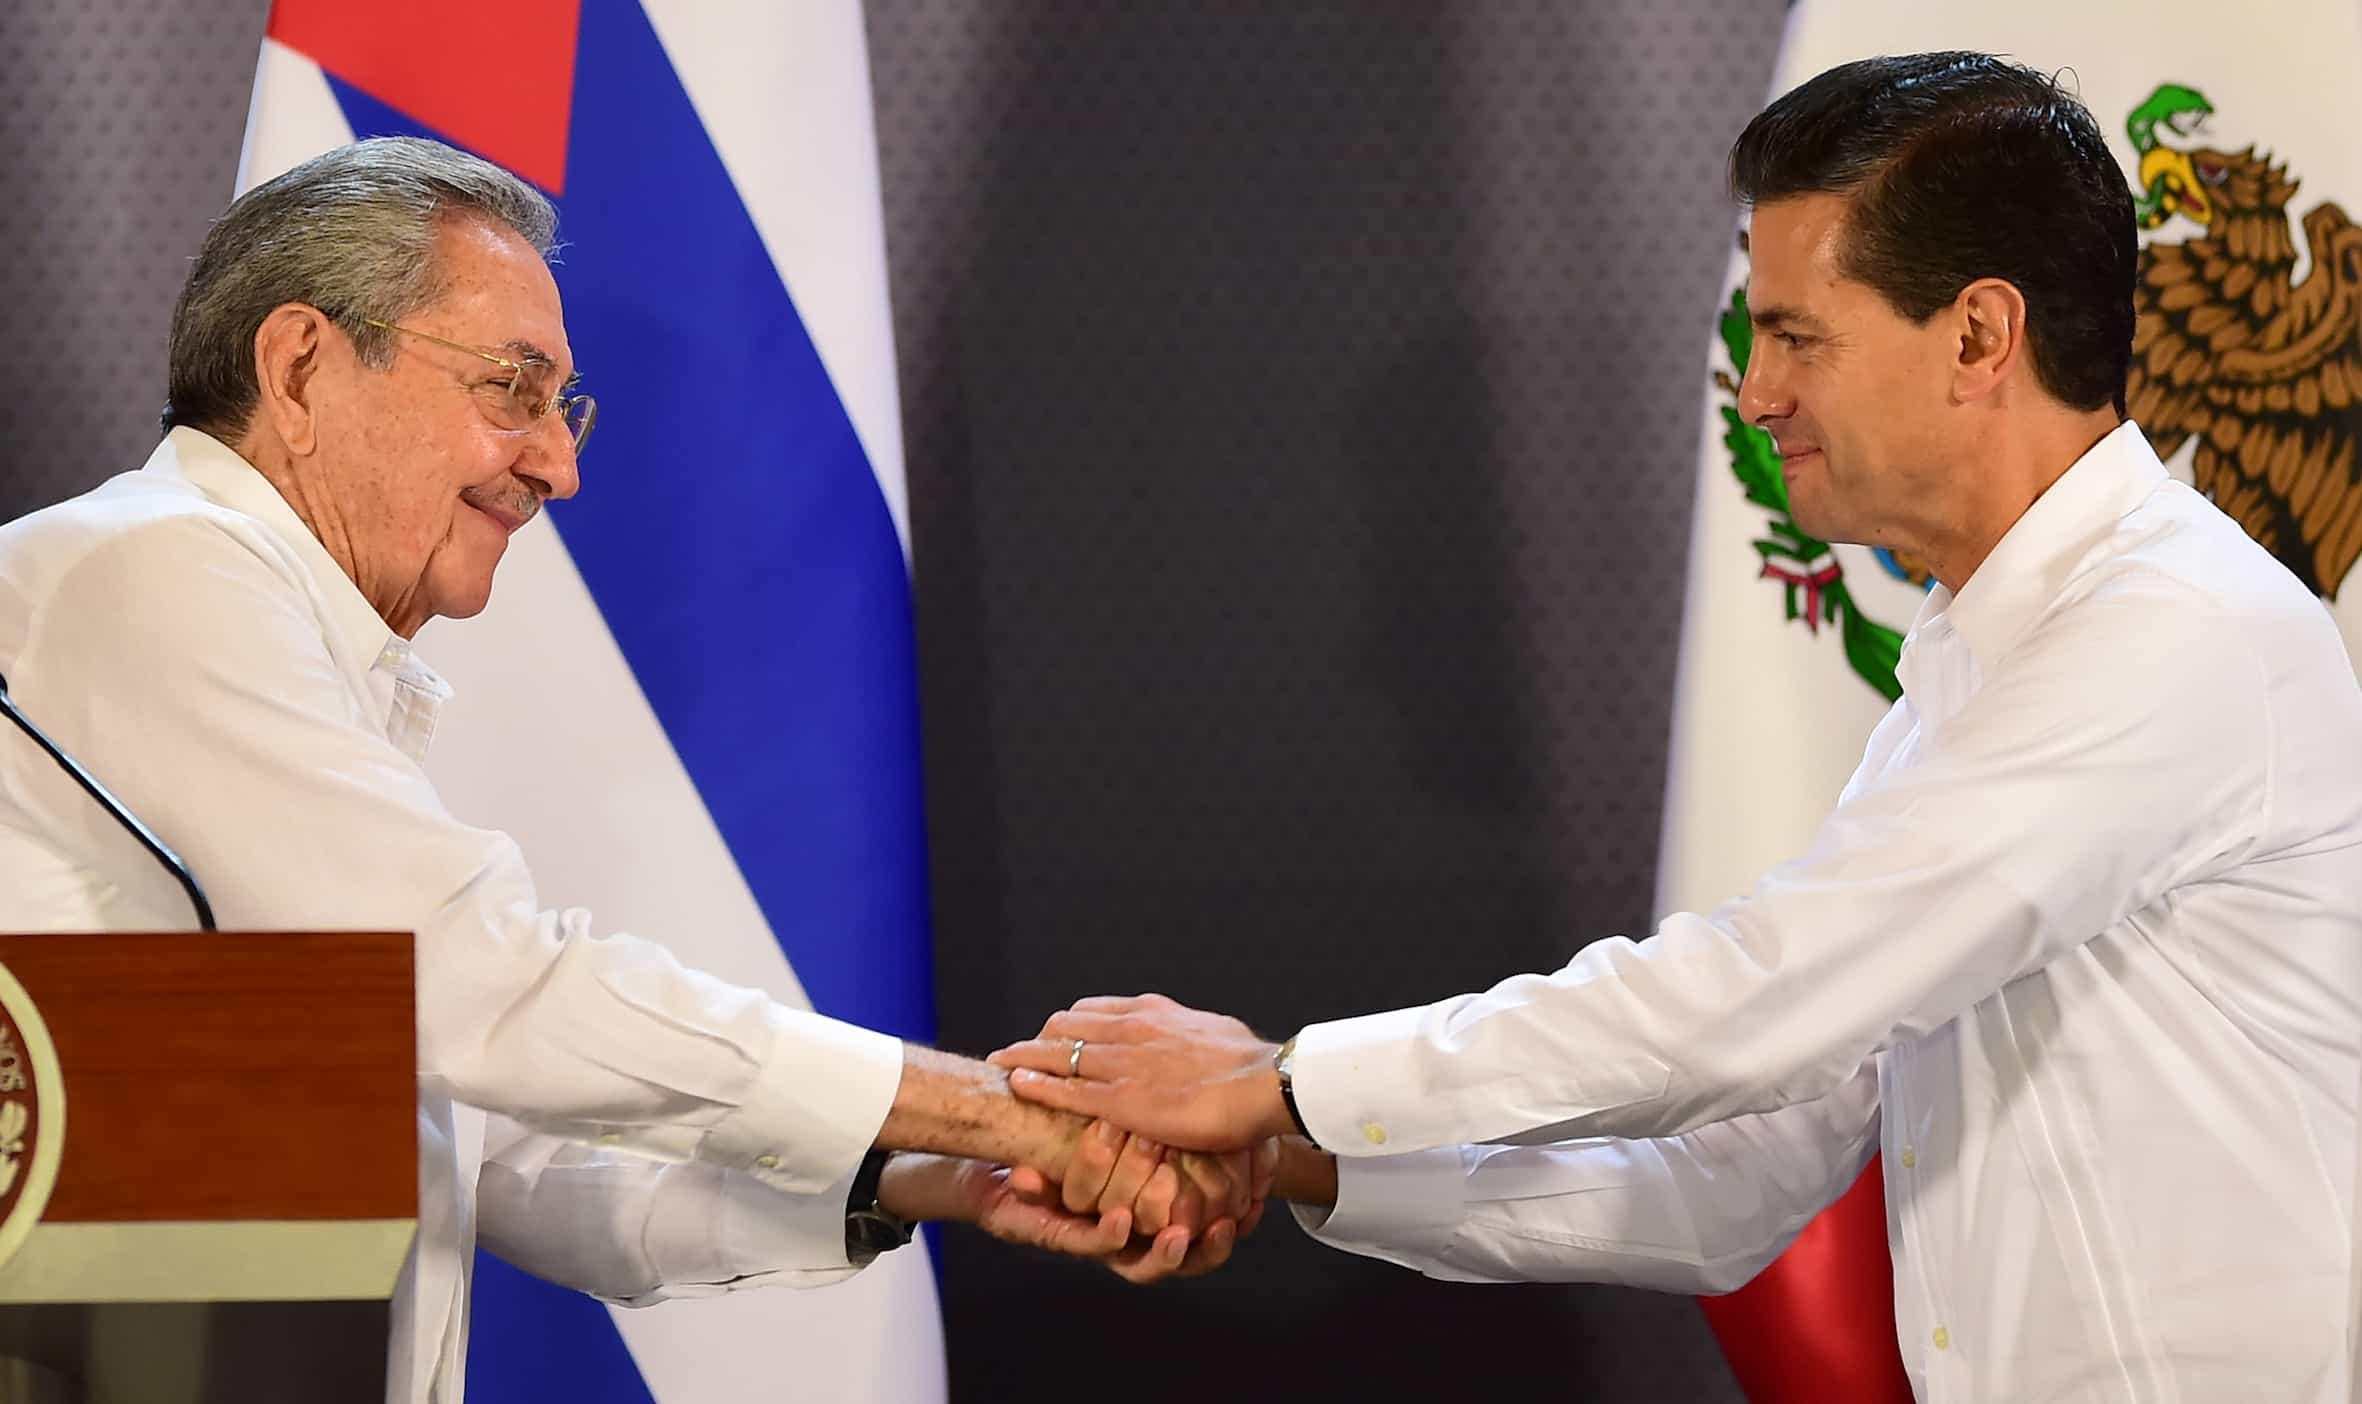 Cuba-Mexico ties: Raul Castro and Enrique Peña Nieto